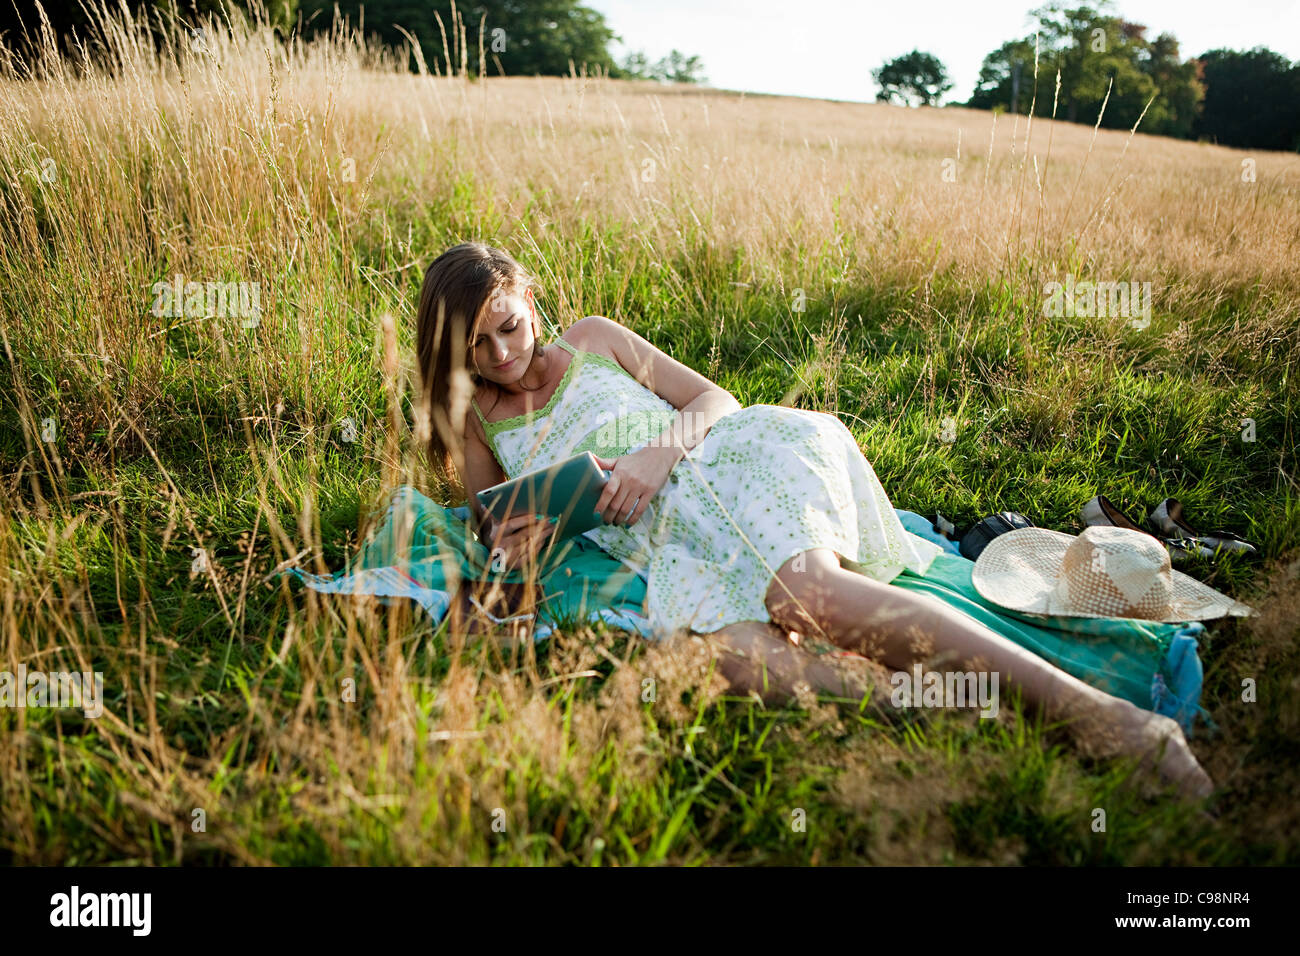 Young woman lying on side field looking hand held device - Stock Image